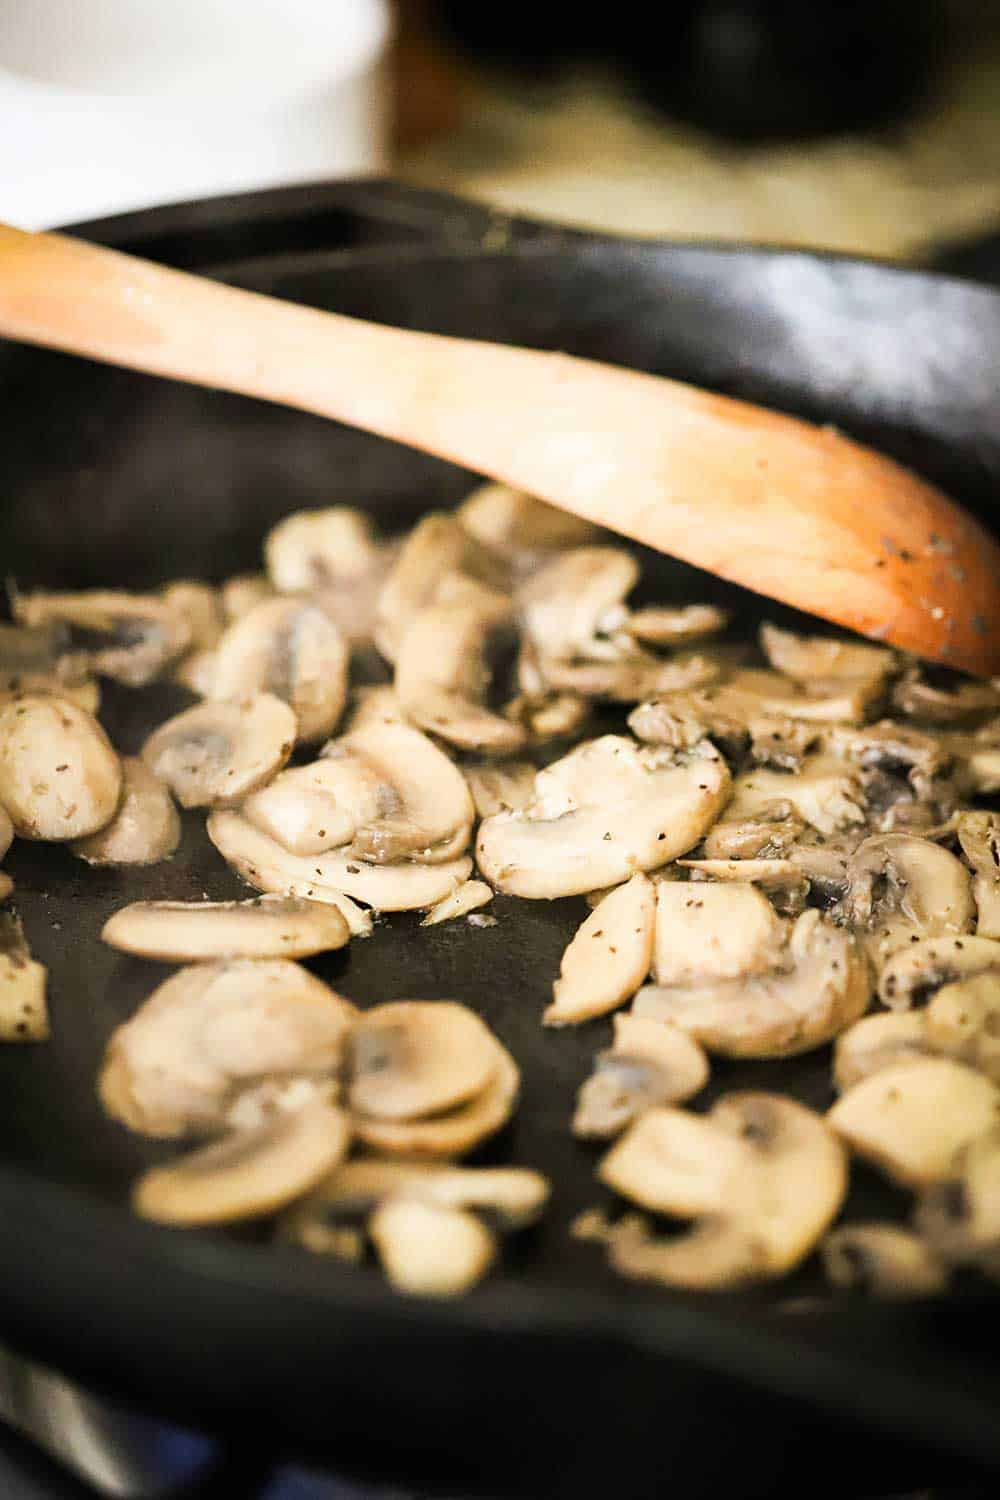 A black cast-iron skillet with sliced mushrooms being sautéd in it, with a wooden spoon in the pan, also.